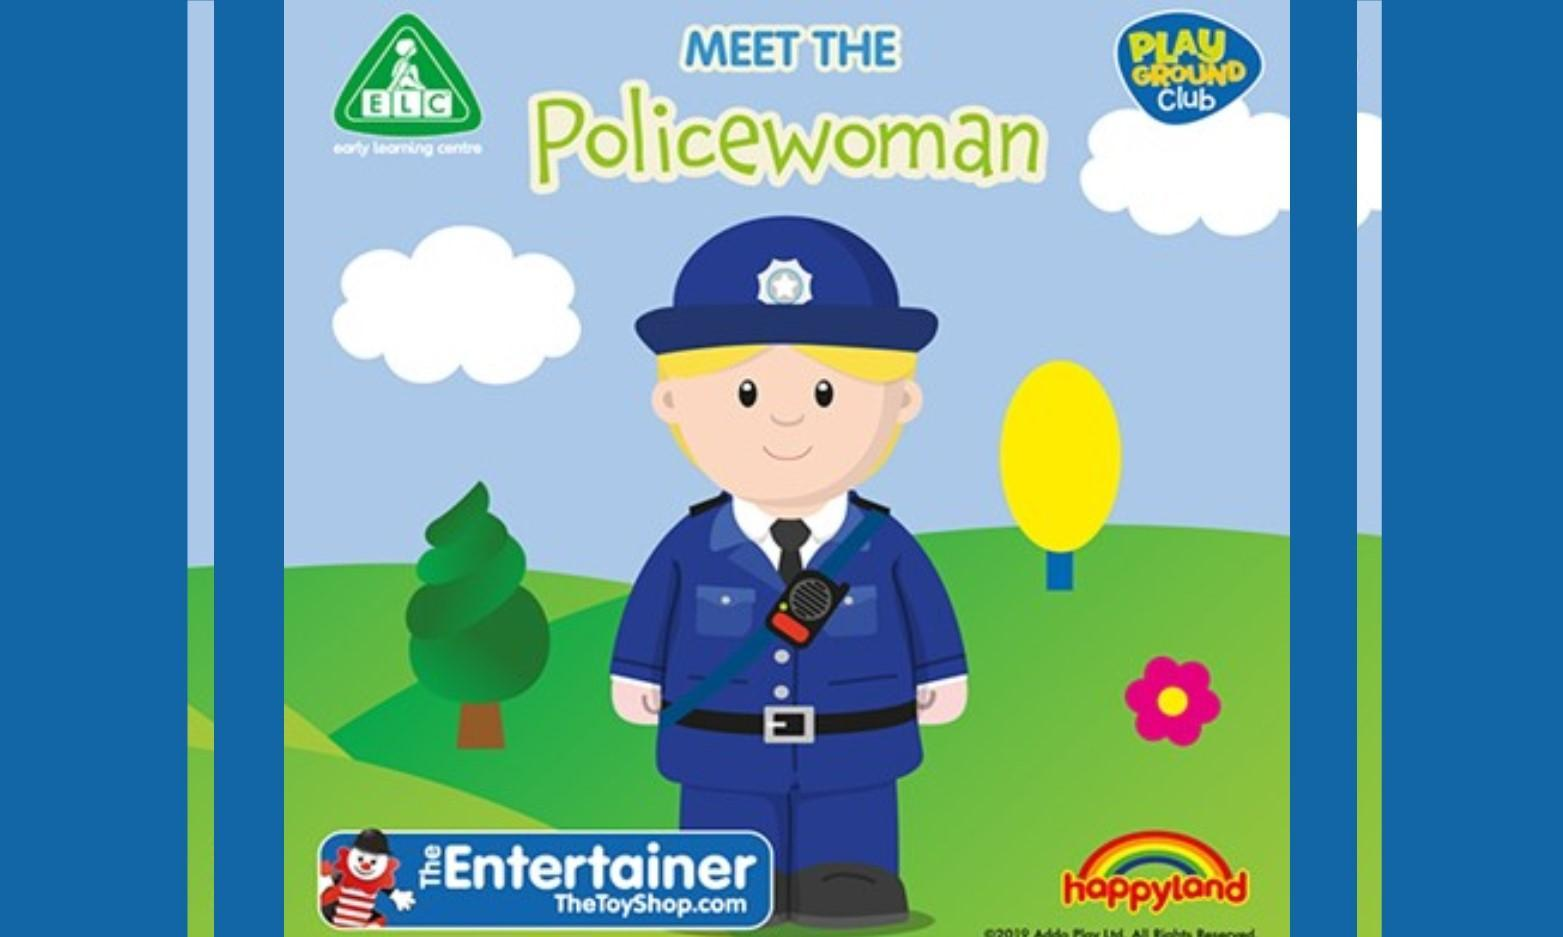 Meet the Policewoman at The Entertainer Carmarthen